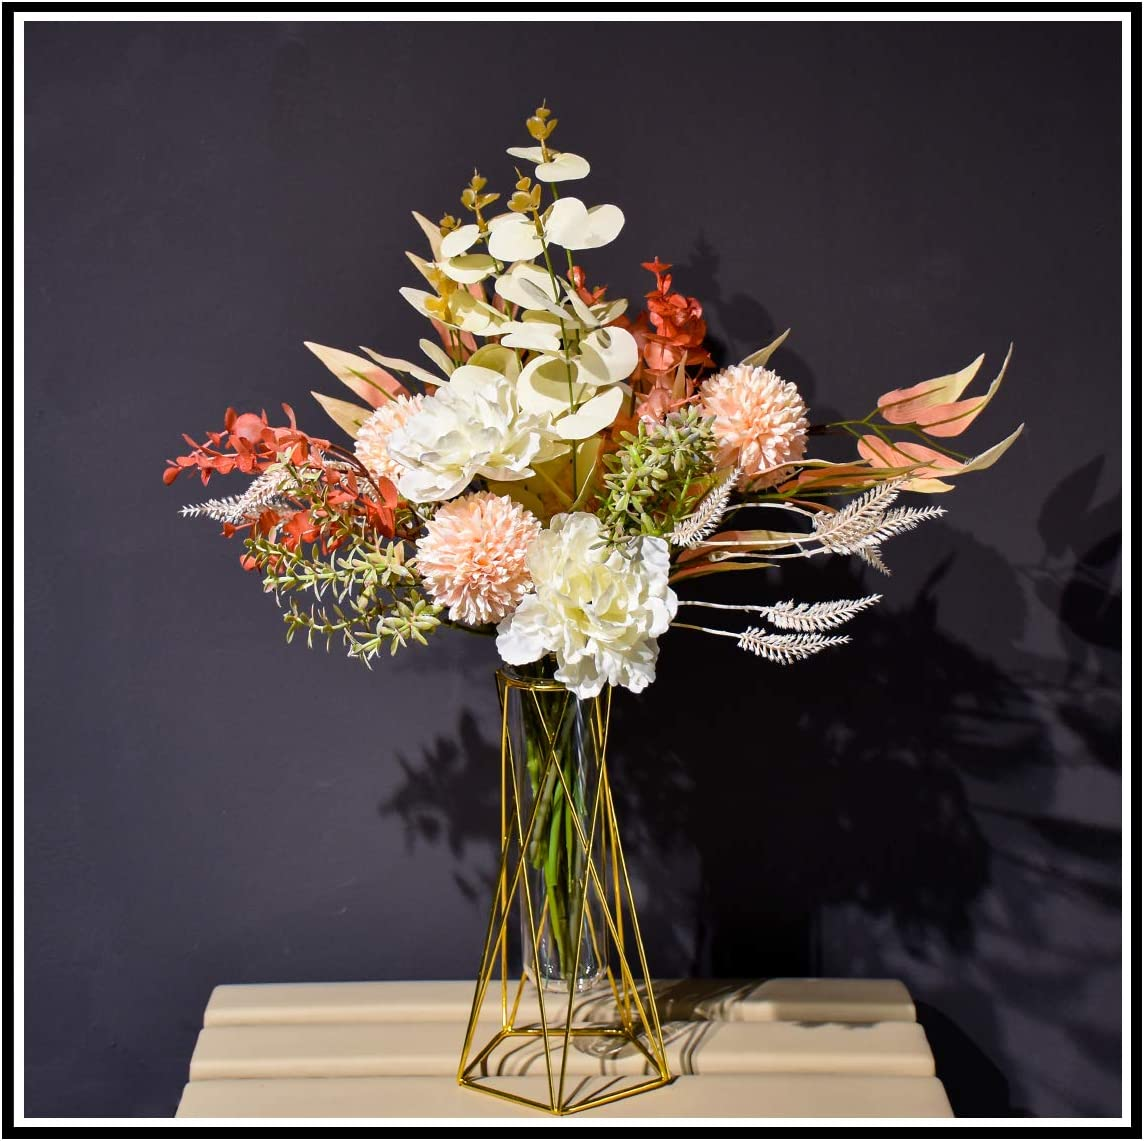 Fake Flowers with Vase Flowers Artificial for Decoration, Gifts for Mom, Real Touch Peonies Artificial Flowers Arrangements in Vase for Home Decor Indoor Yellow Peony